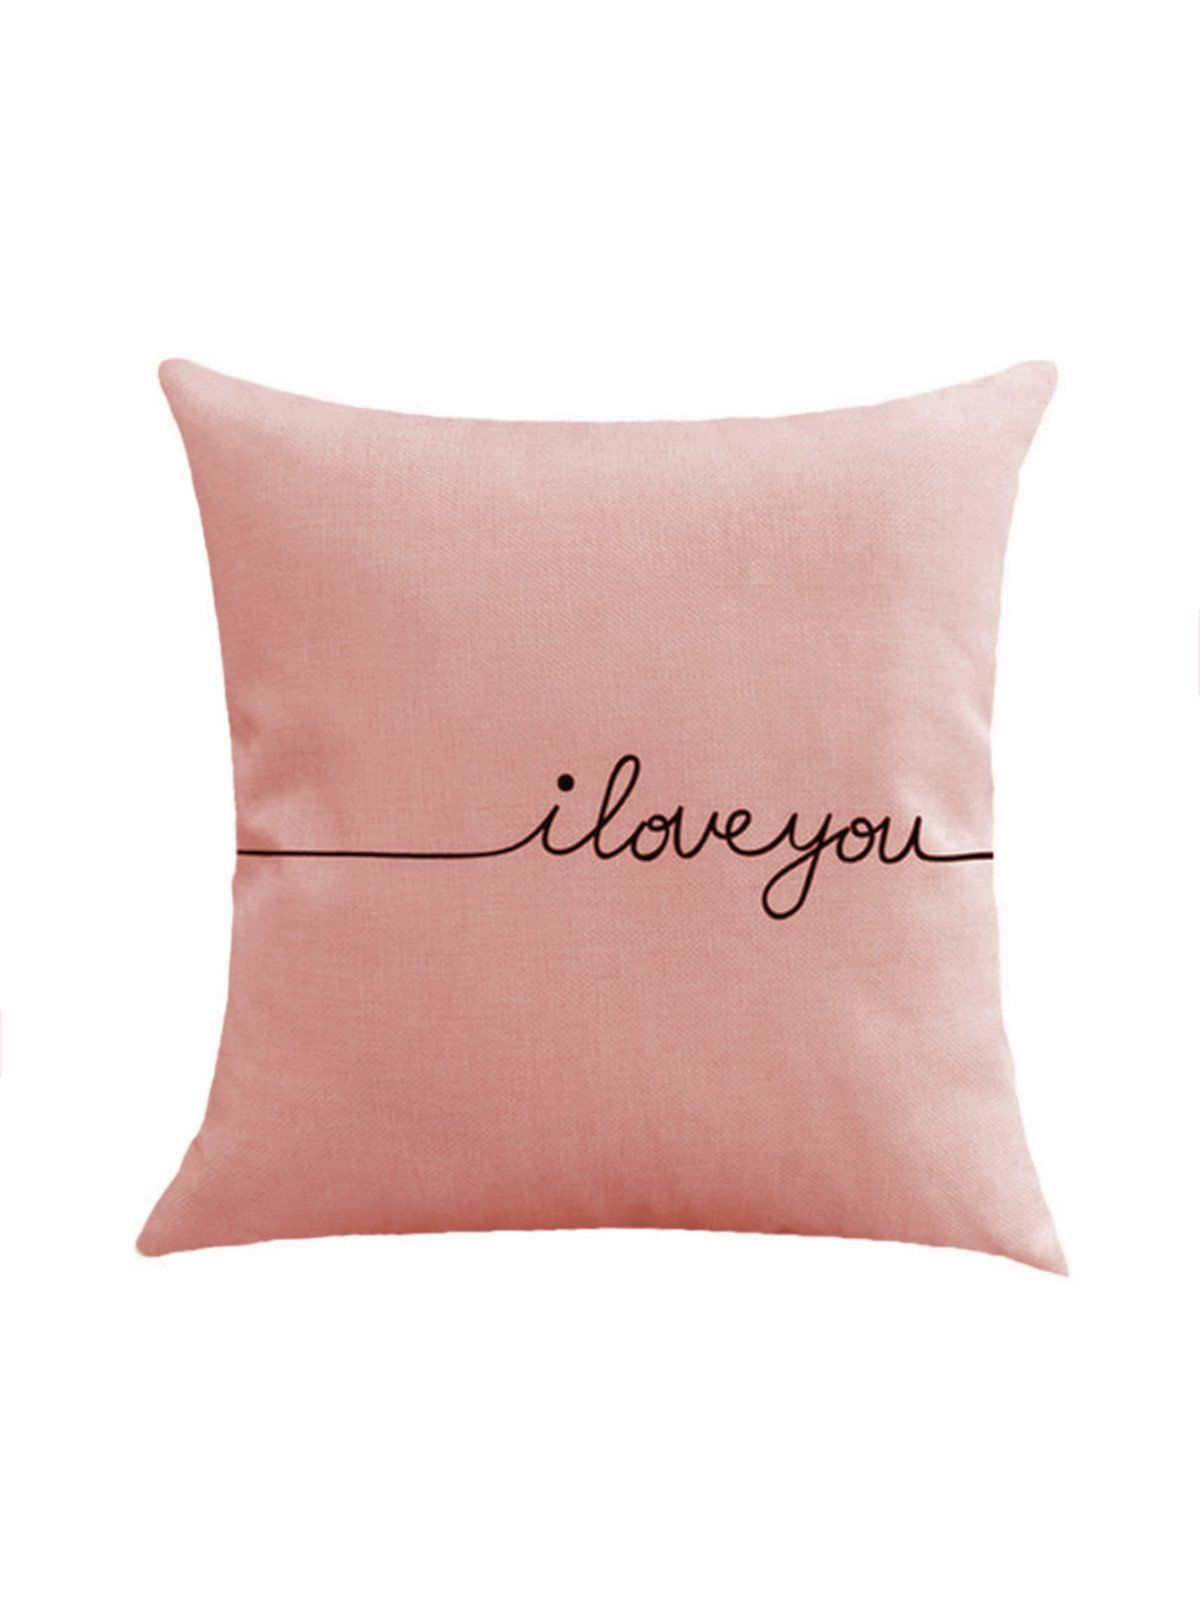 Pillow Perfect choice for Casual, Basic wear. Print design. Designed in Beige.